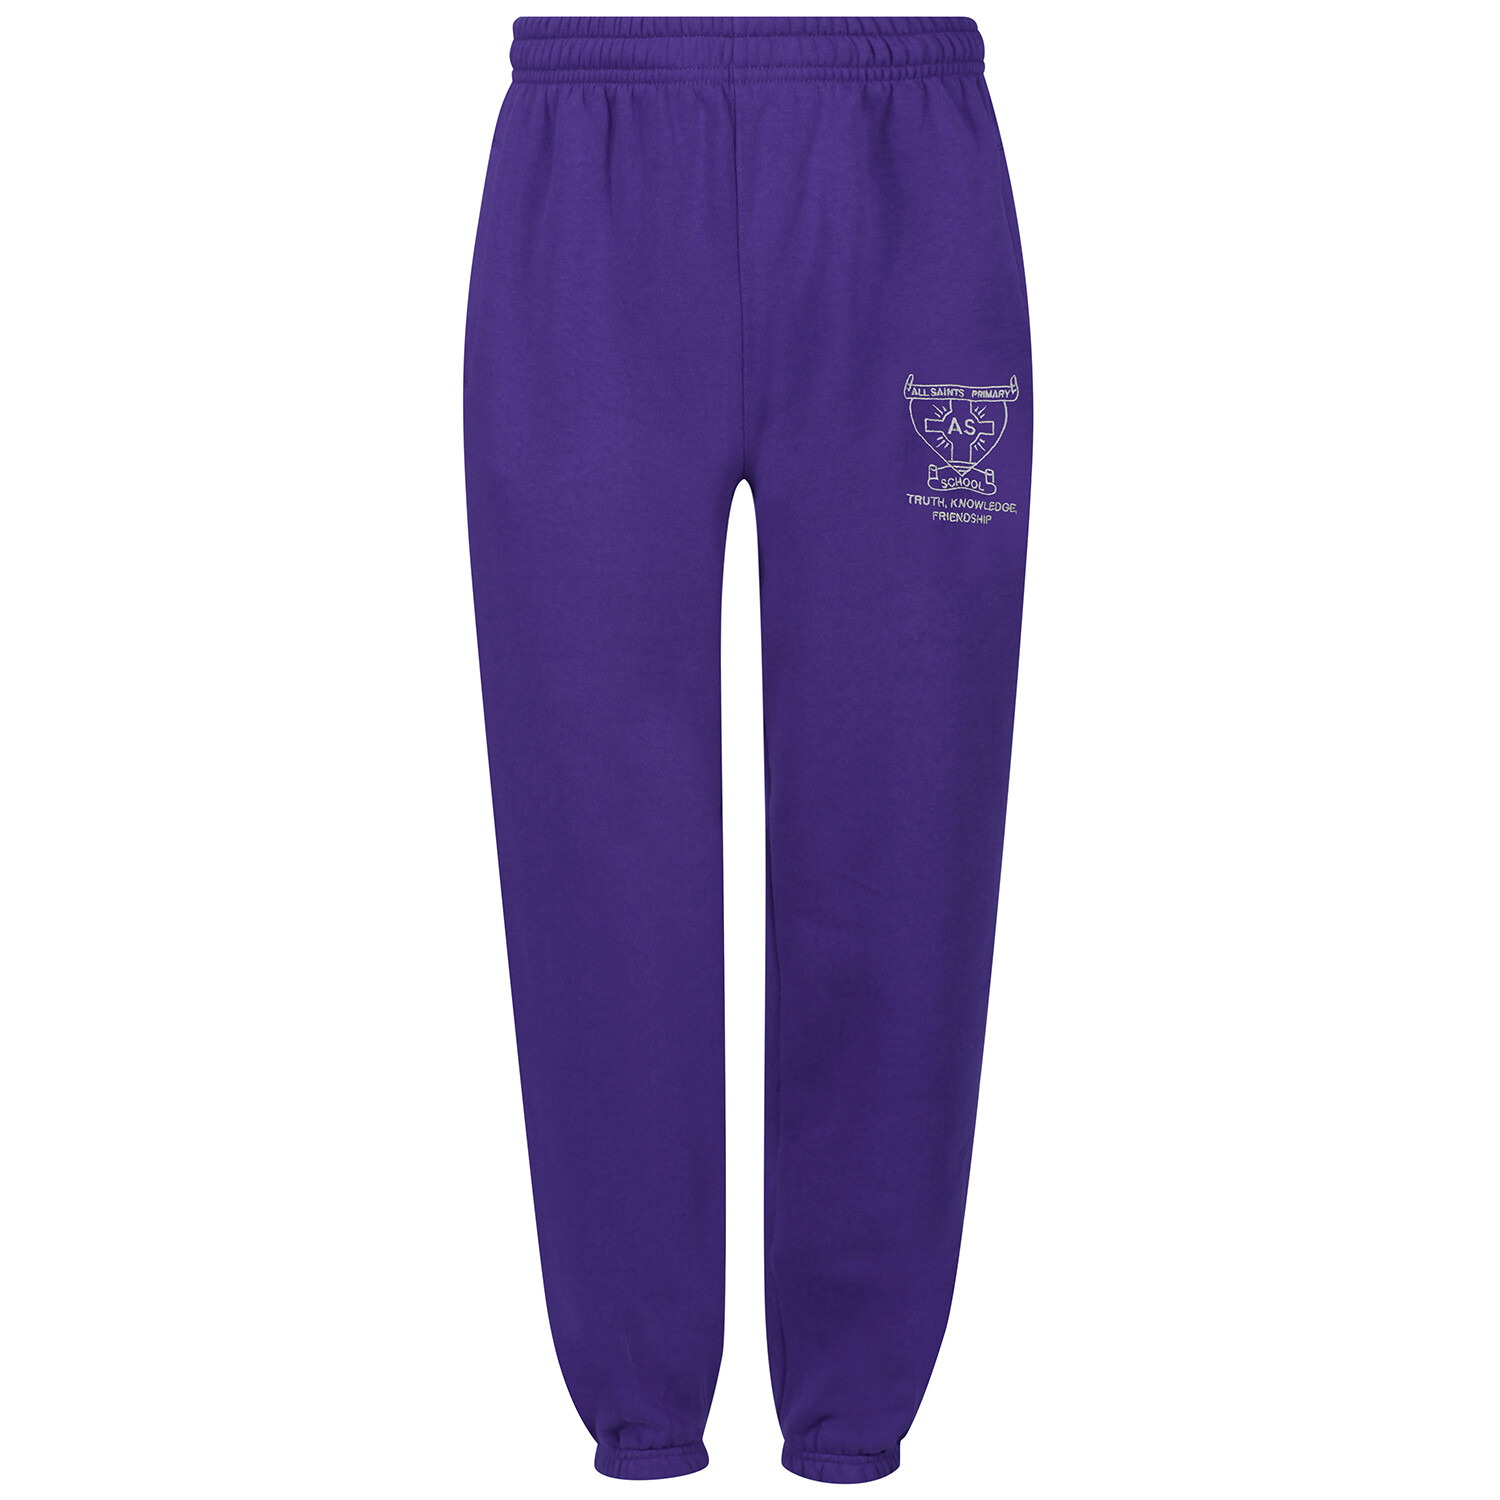 All Saints Jog Pant for PE & Outdoor Activity (choice of colours)